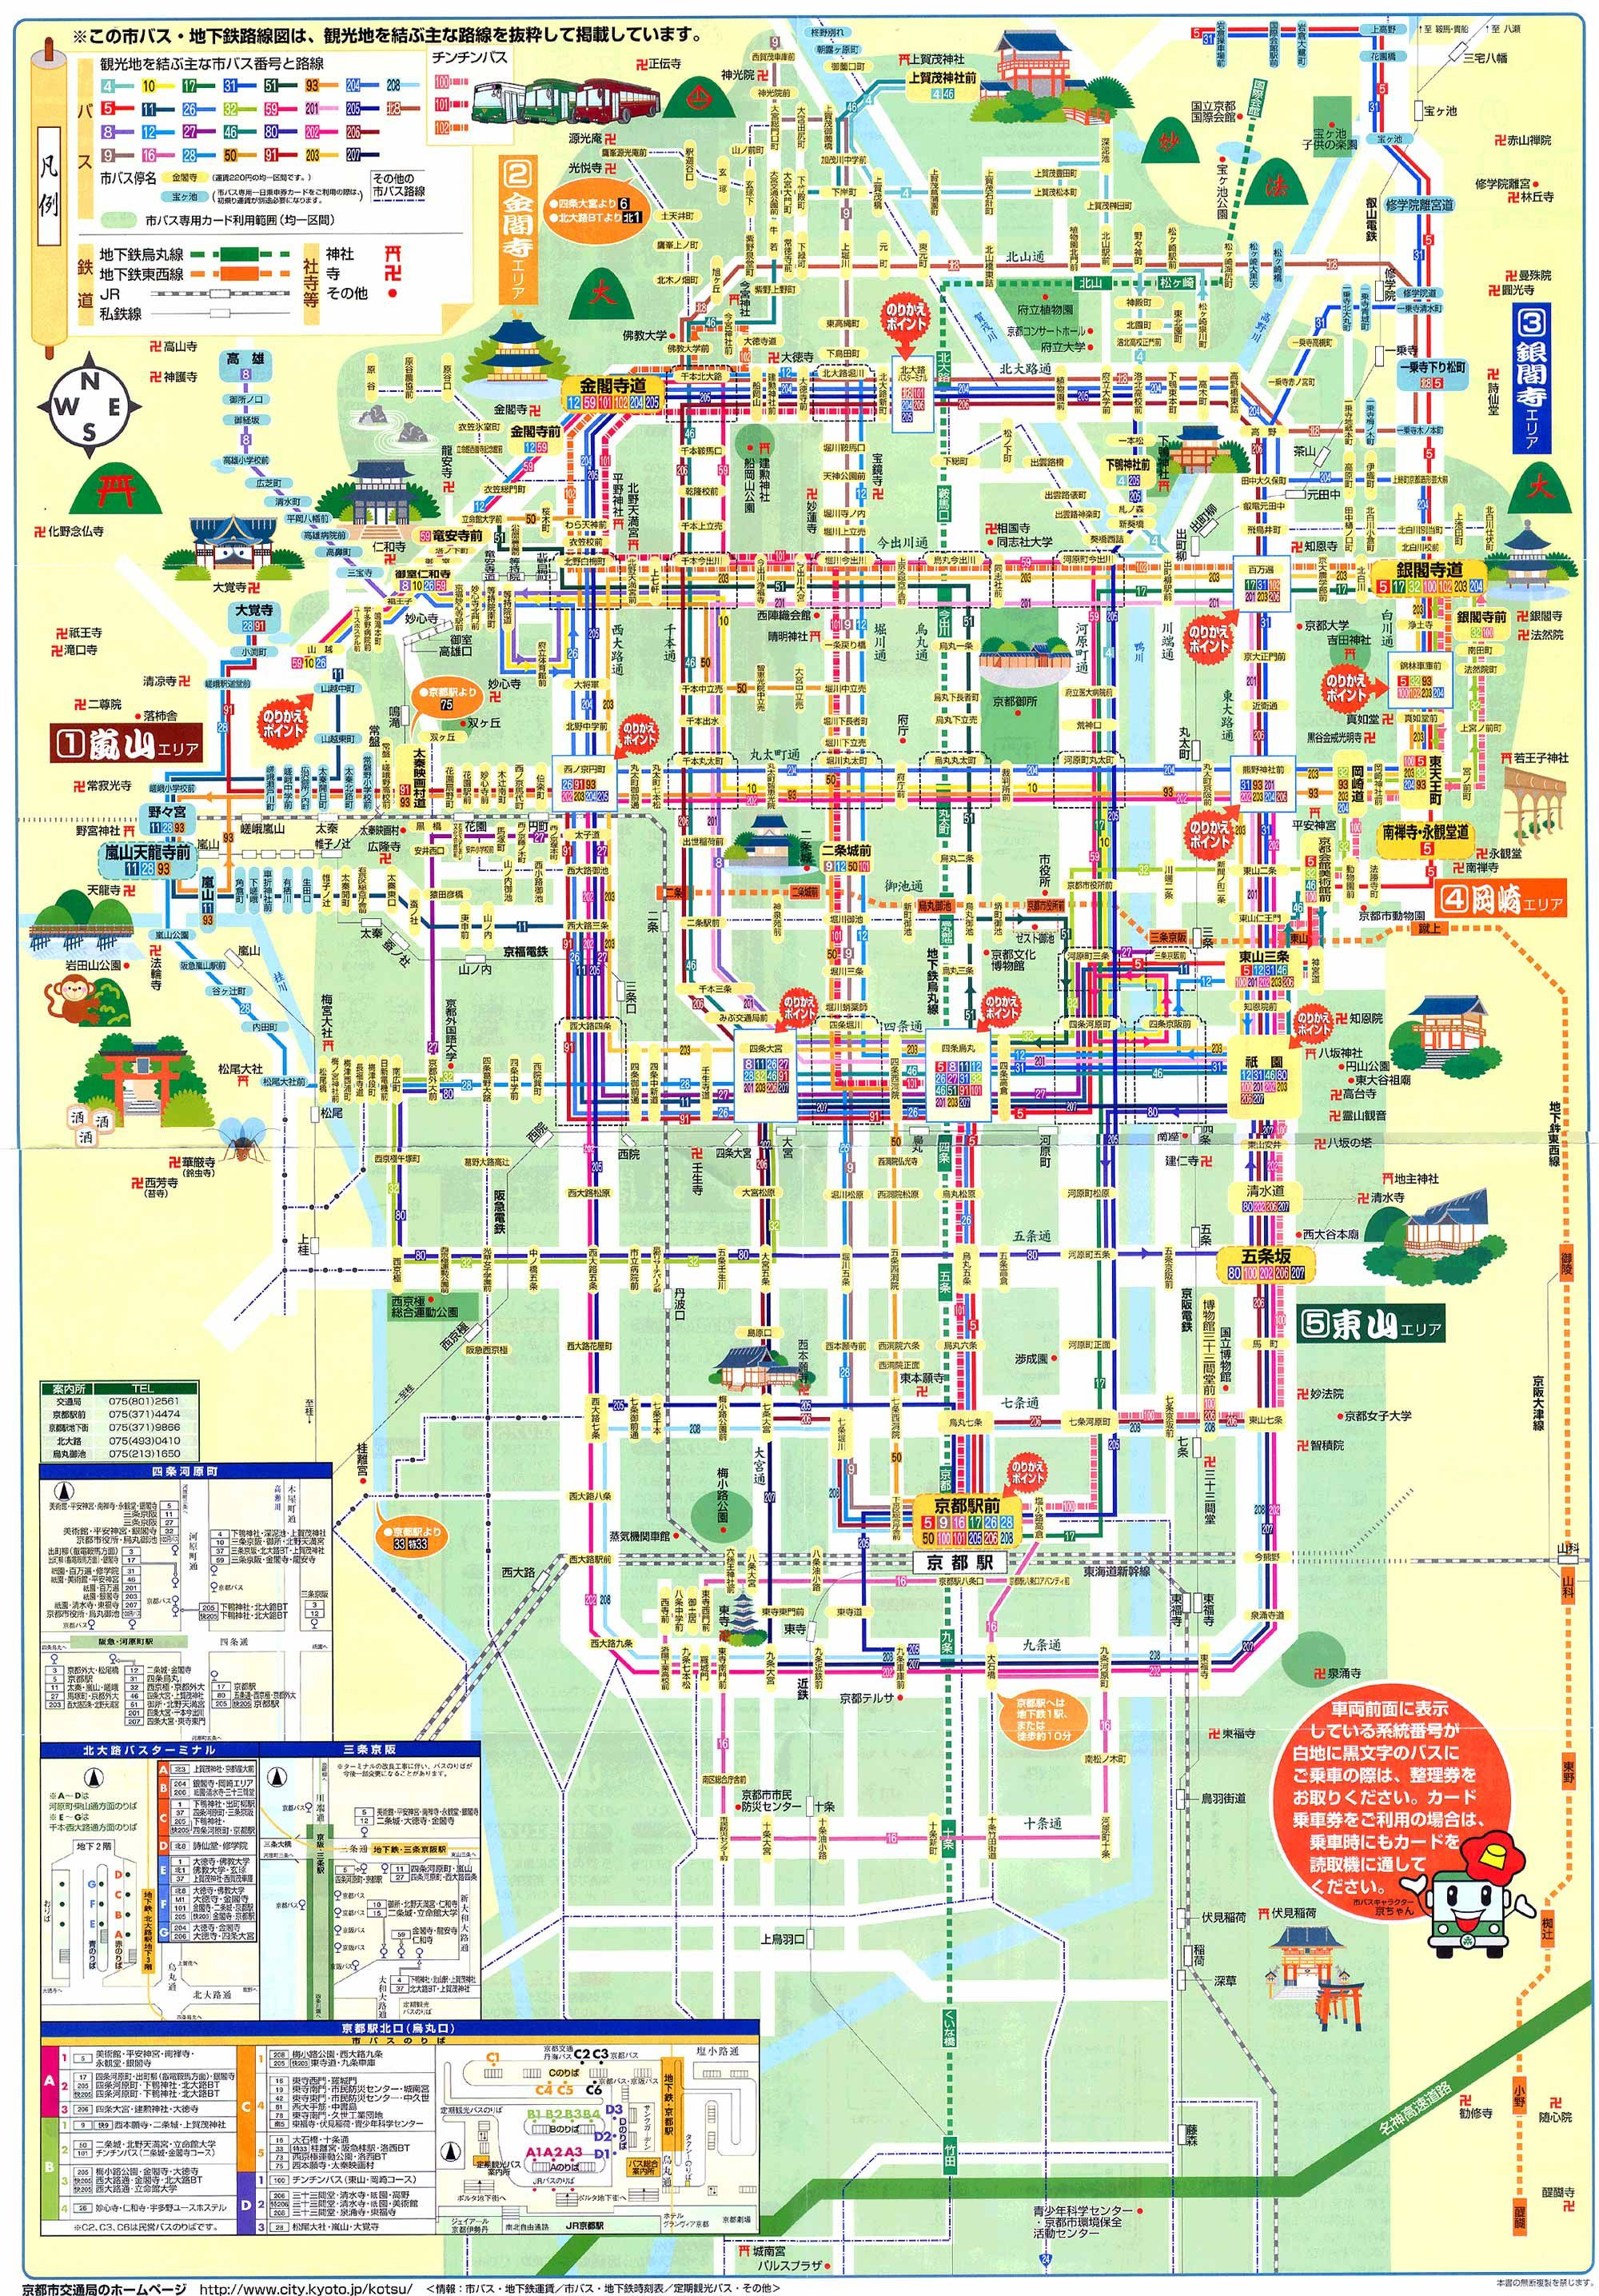 Printable Map 01 Lovely High Resolution Map Of Kyoto For Print Or